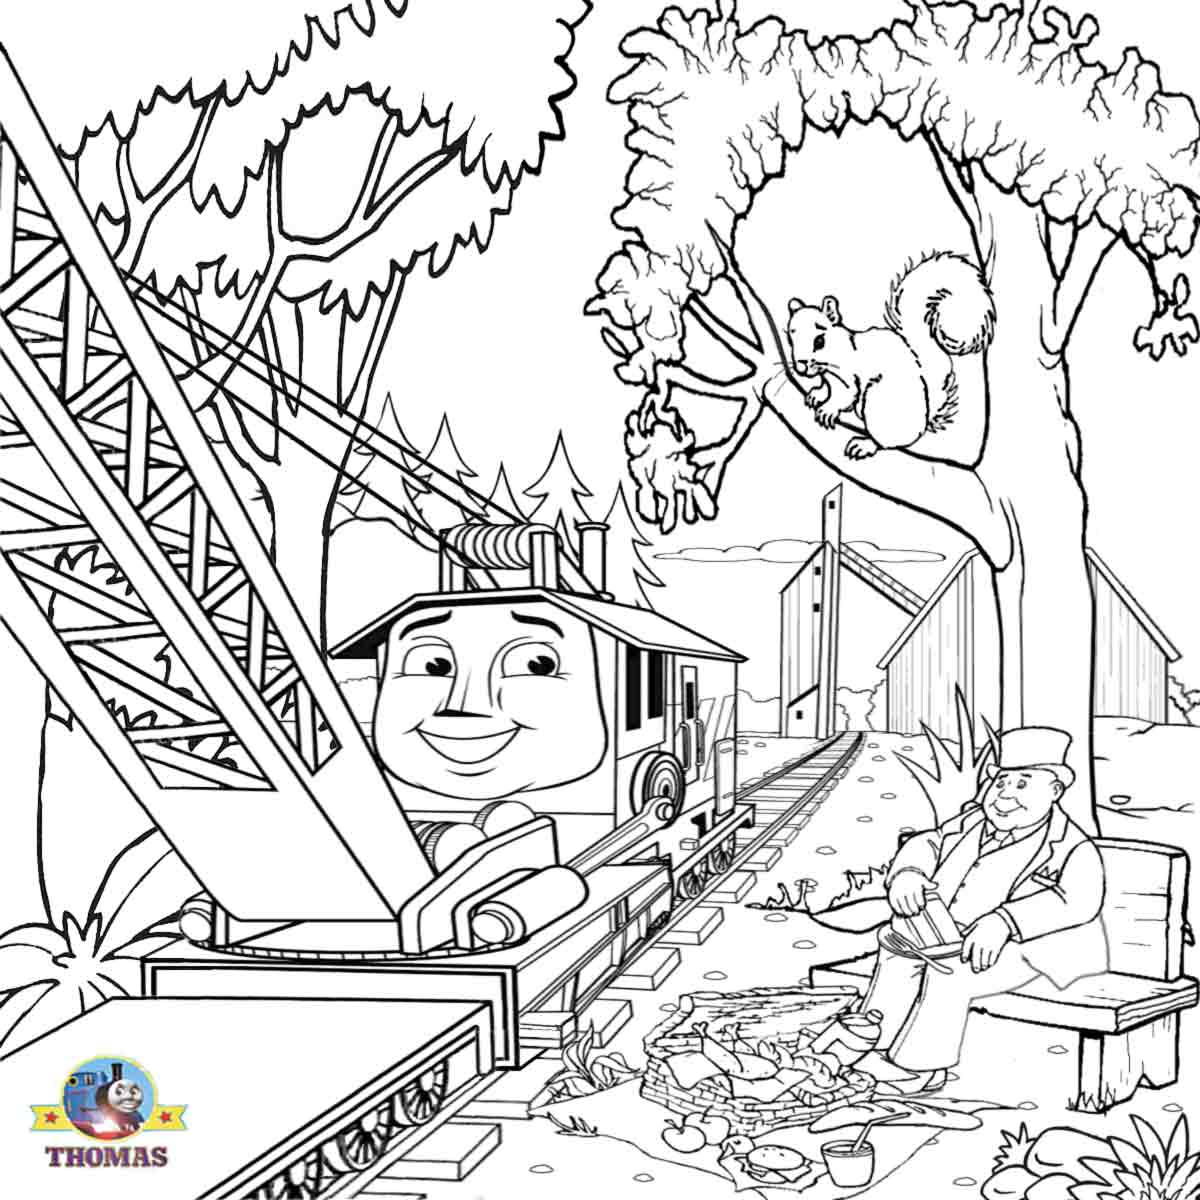 thomas minis coloring pages thomas the train drawing at getdrawings free download coloring minis pages thomas